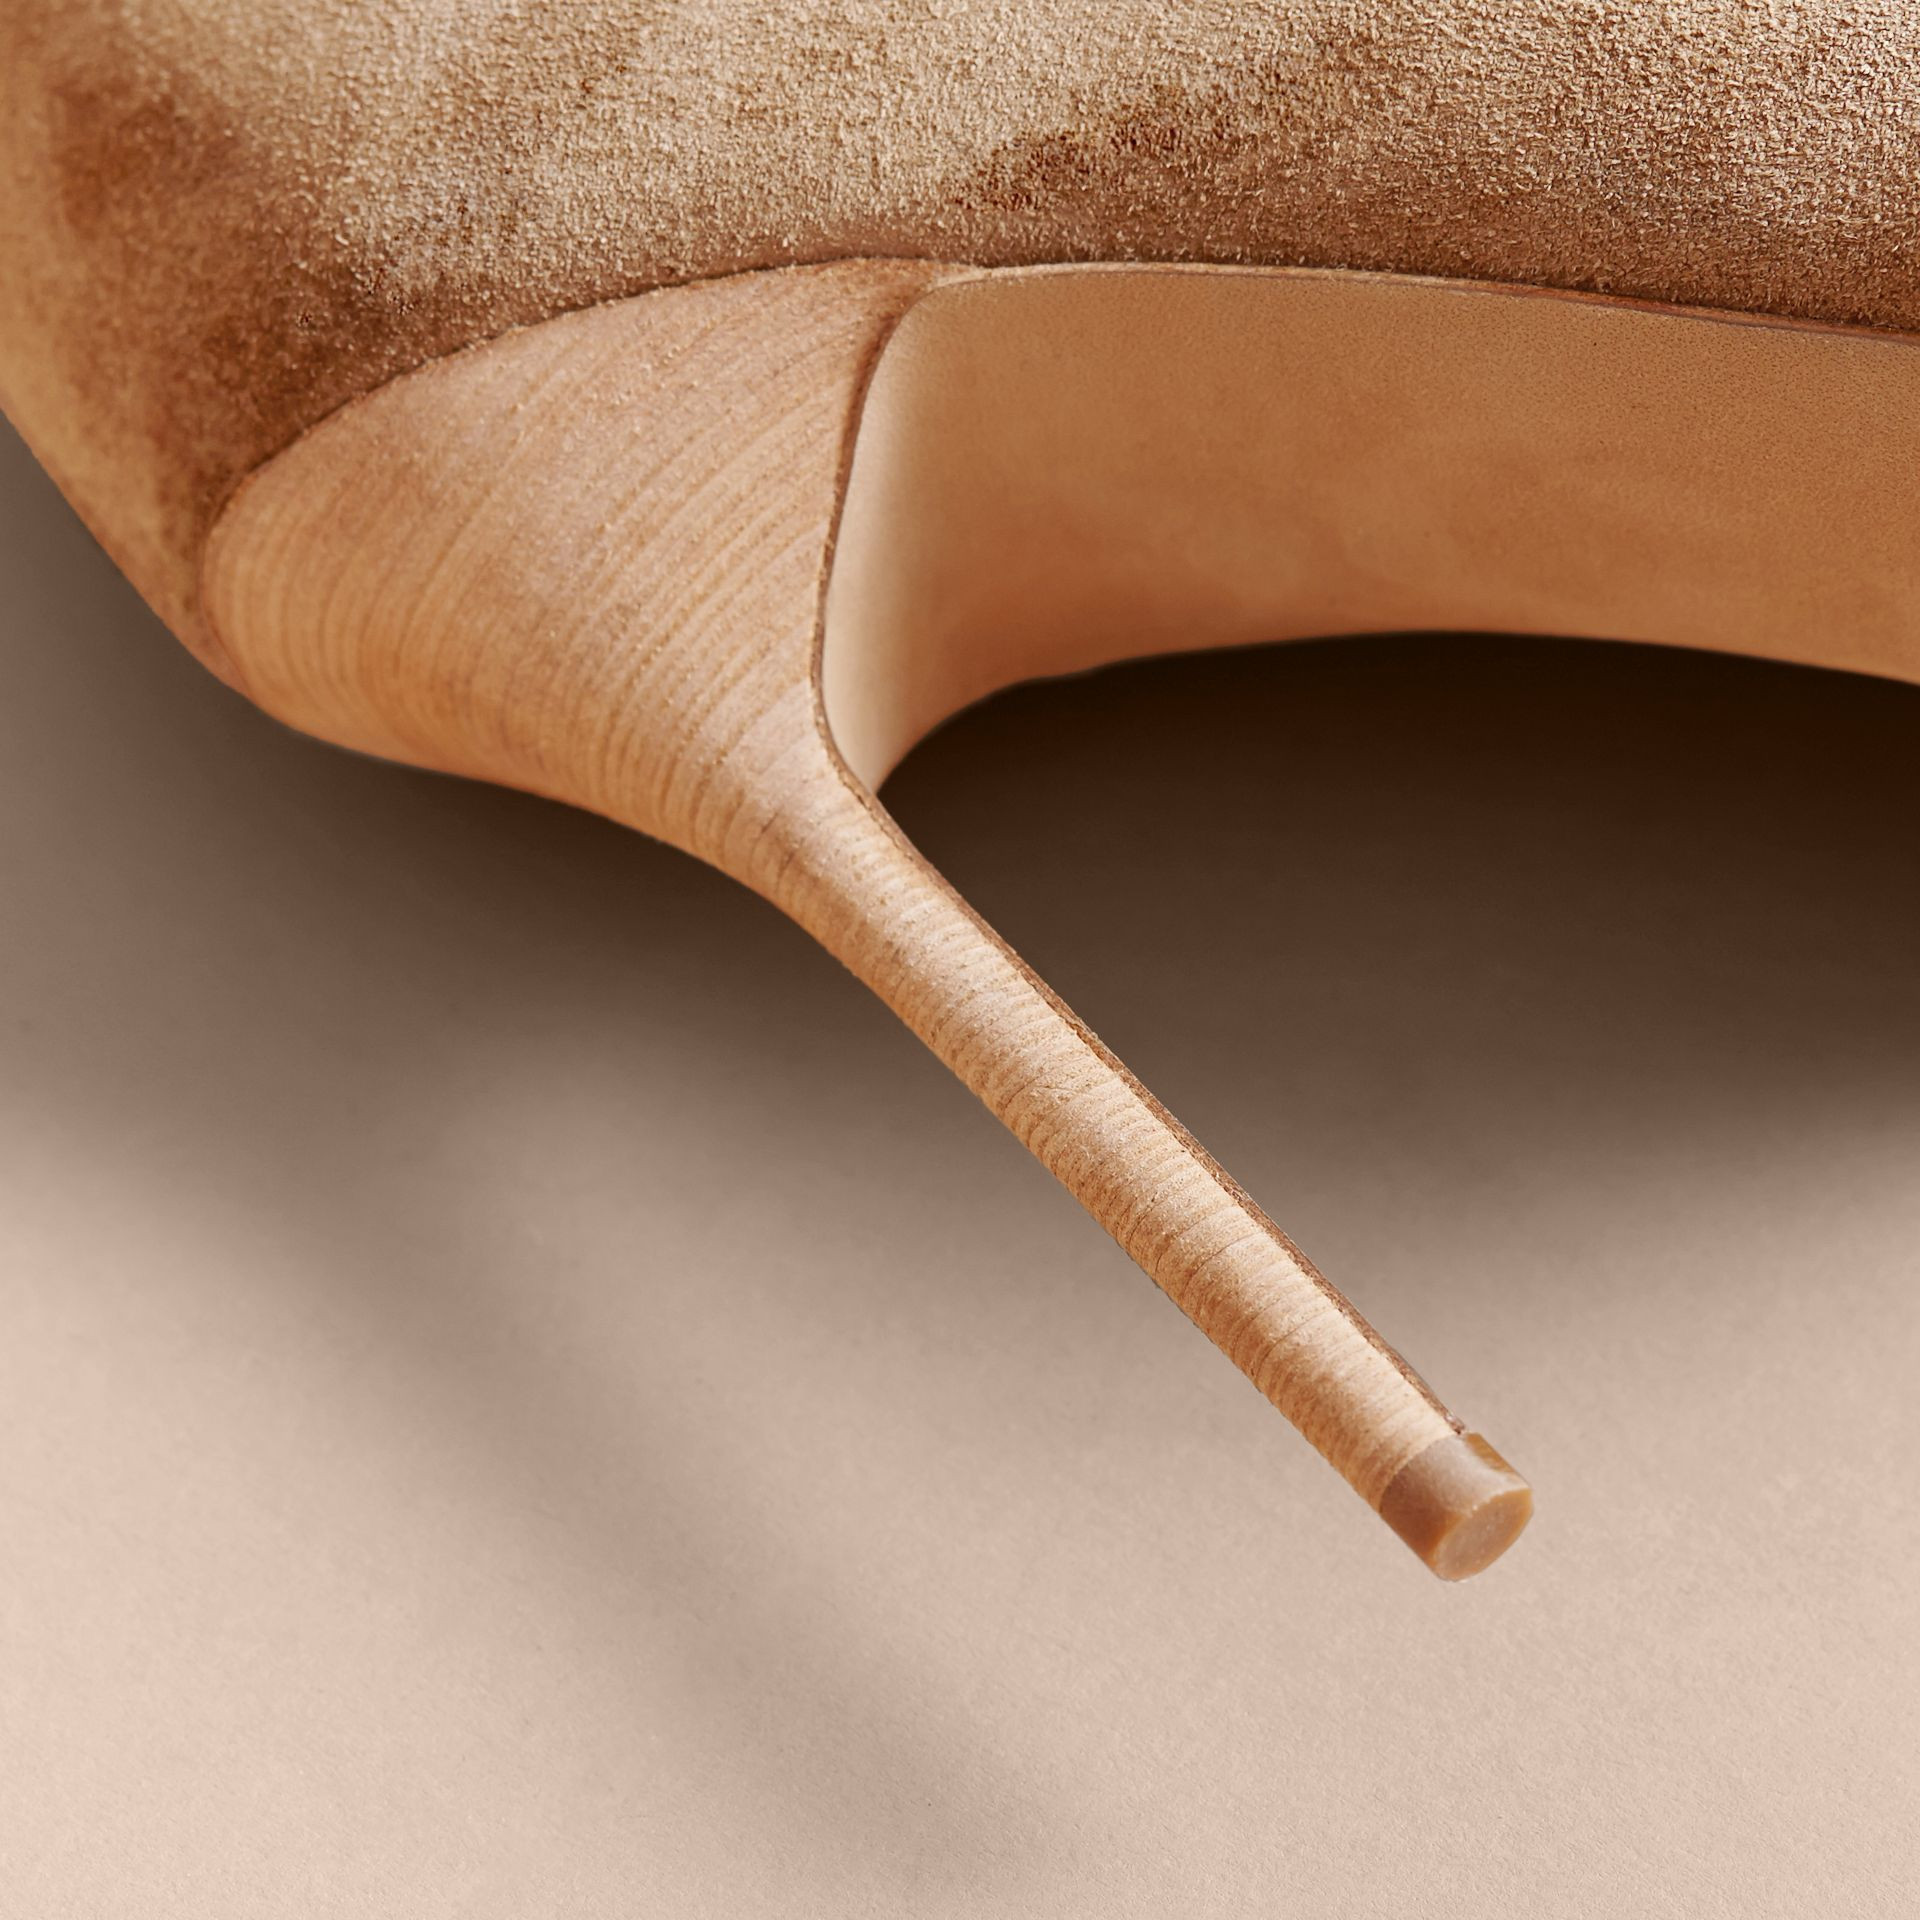 Scalloped Suede Ankle Boots in Sandstone - Women | Burberry United States - gallery image 5